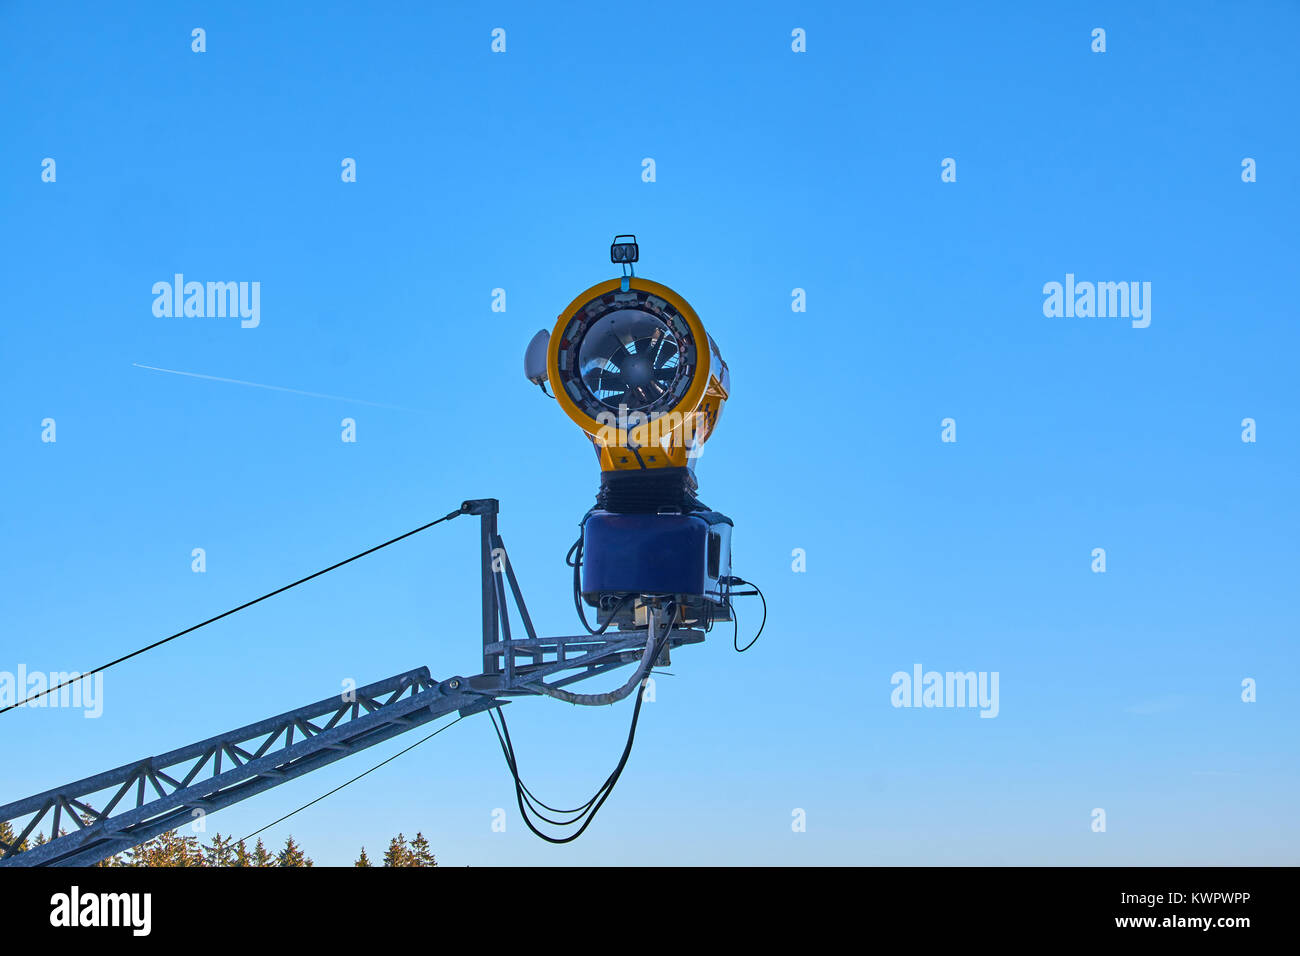 Turned off yellow snow cannon hanging in the air over a piste at Ski Carousel Winterberg against a clear blue sky - Stock Image